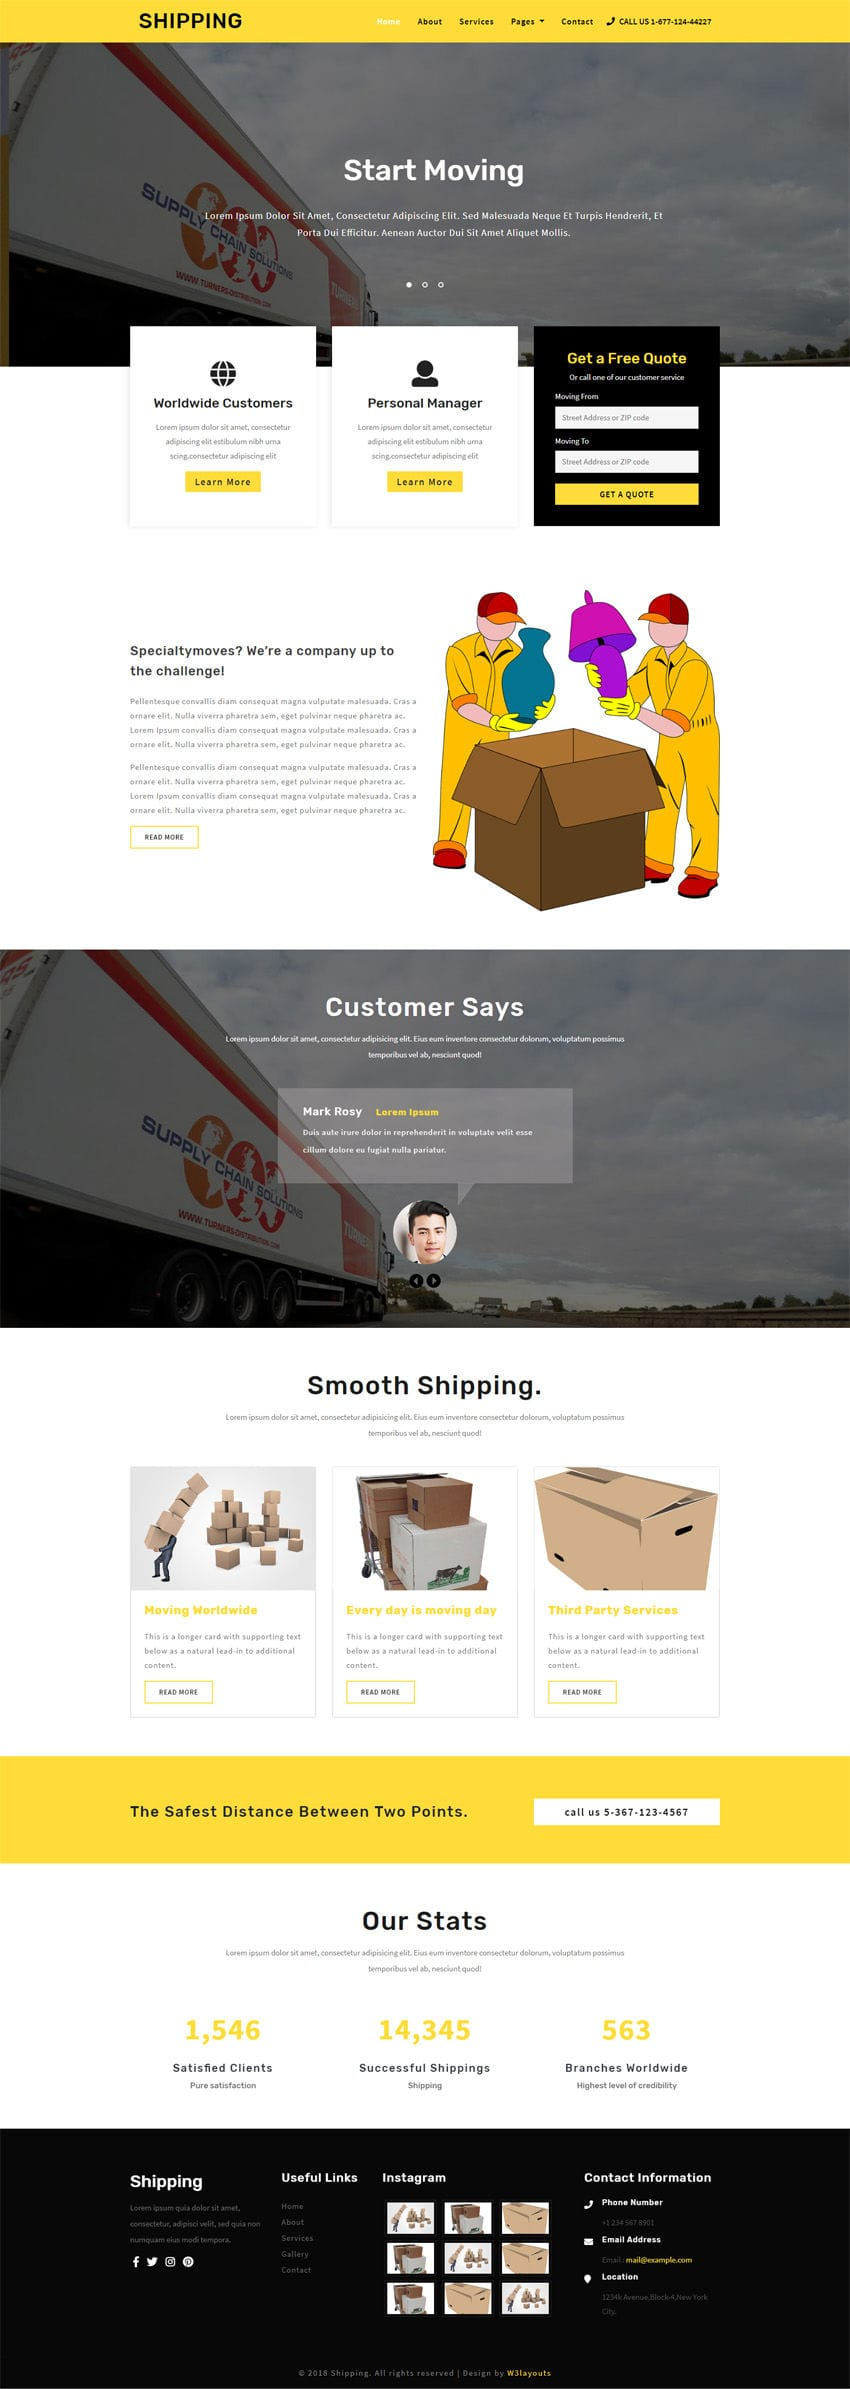 Shipping Transportation Category Bootstrap Responsive Web Template.It is entirely built in Bootstrap framework, HTML5, CSS3 and Jquery.